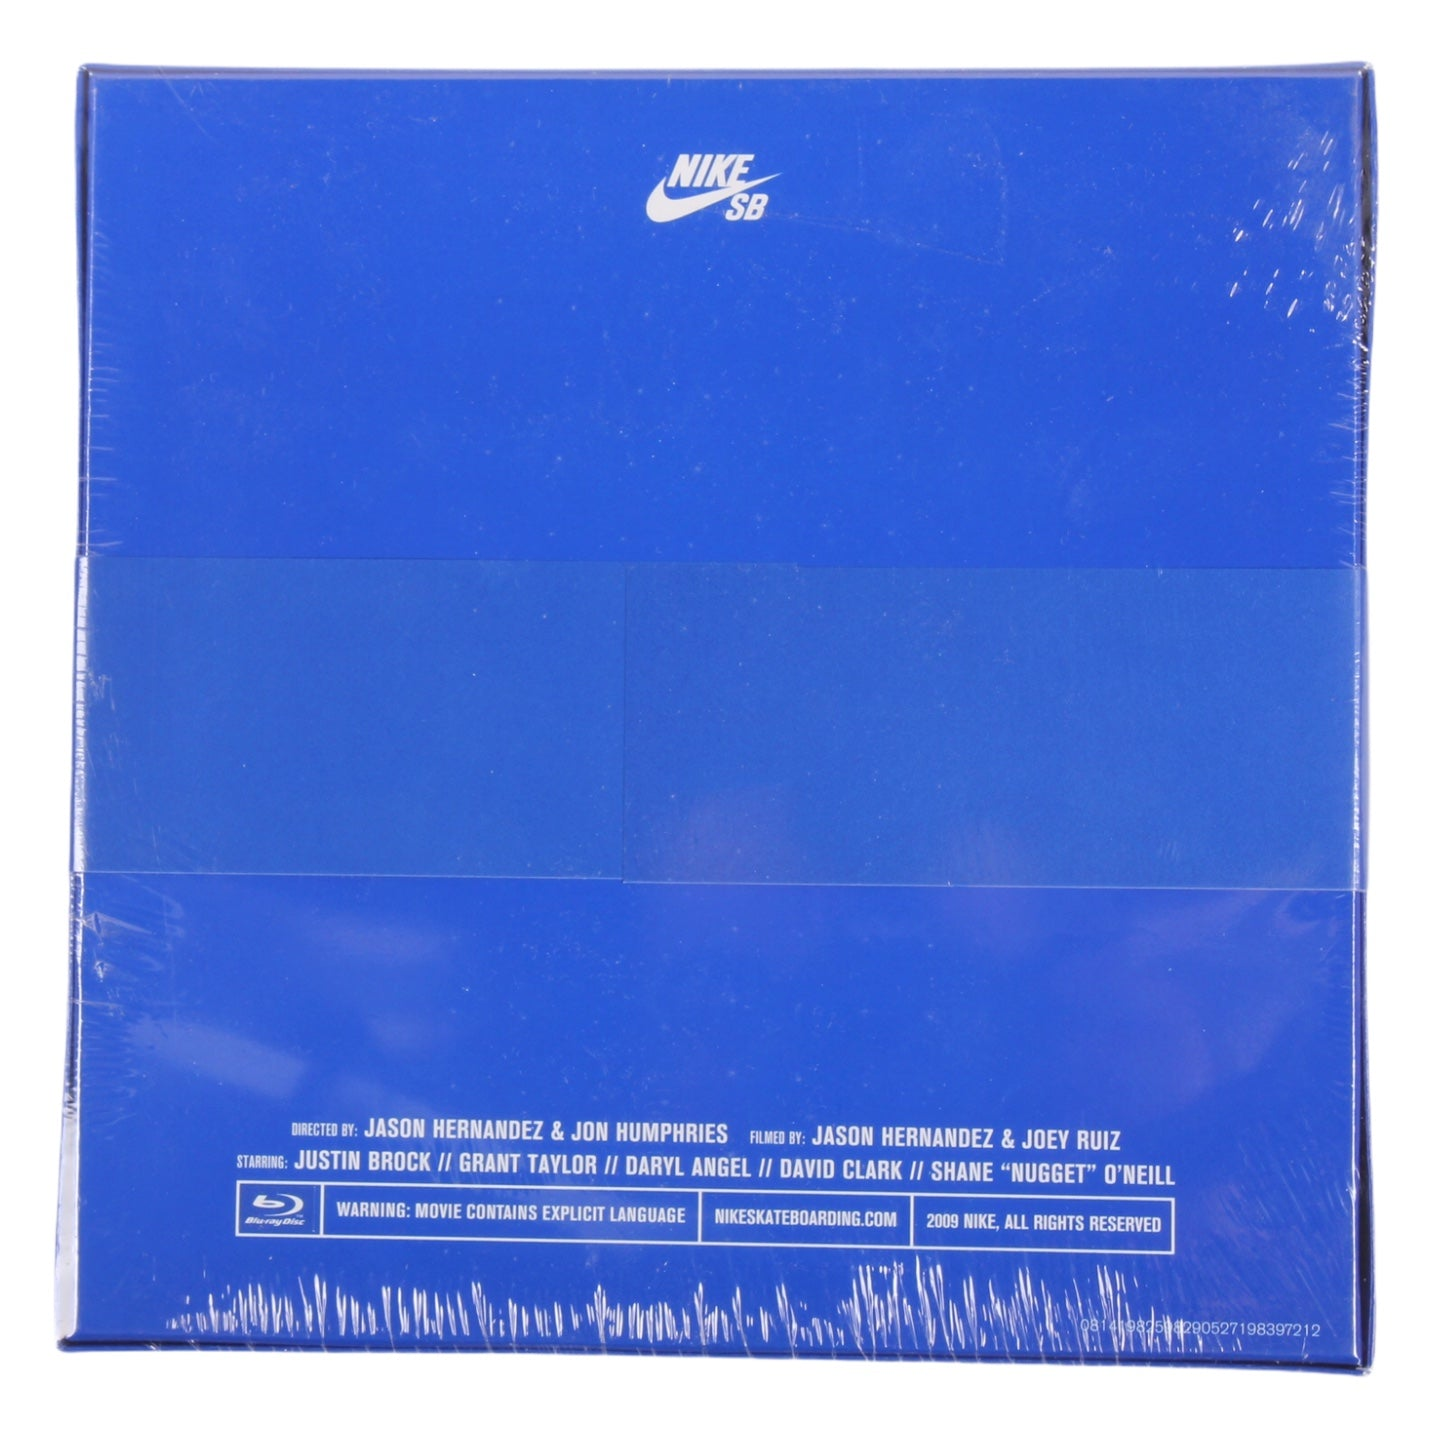 Nike SB Debacle Blu-Ray DVD Sealed (2009)